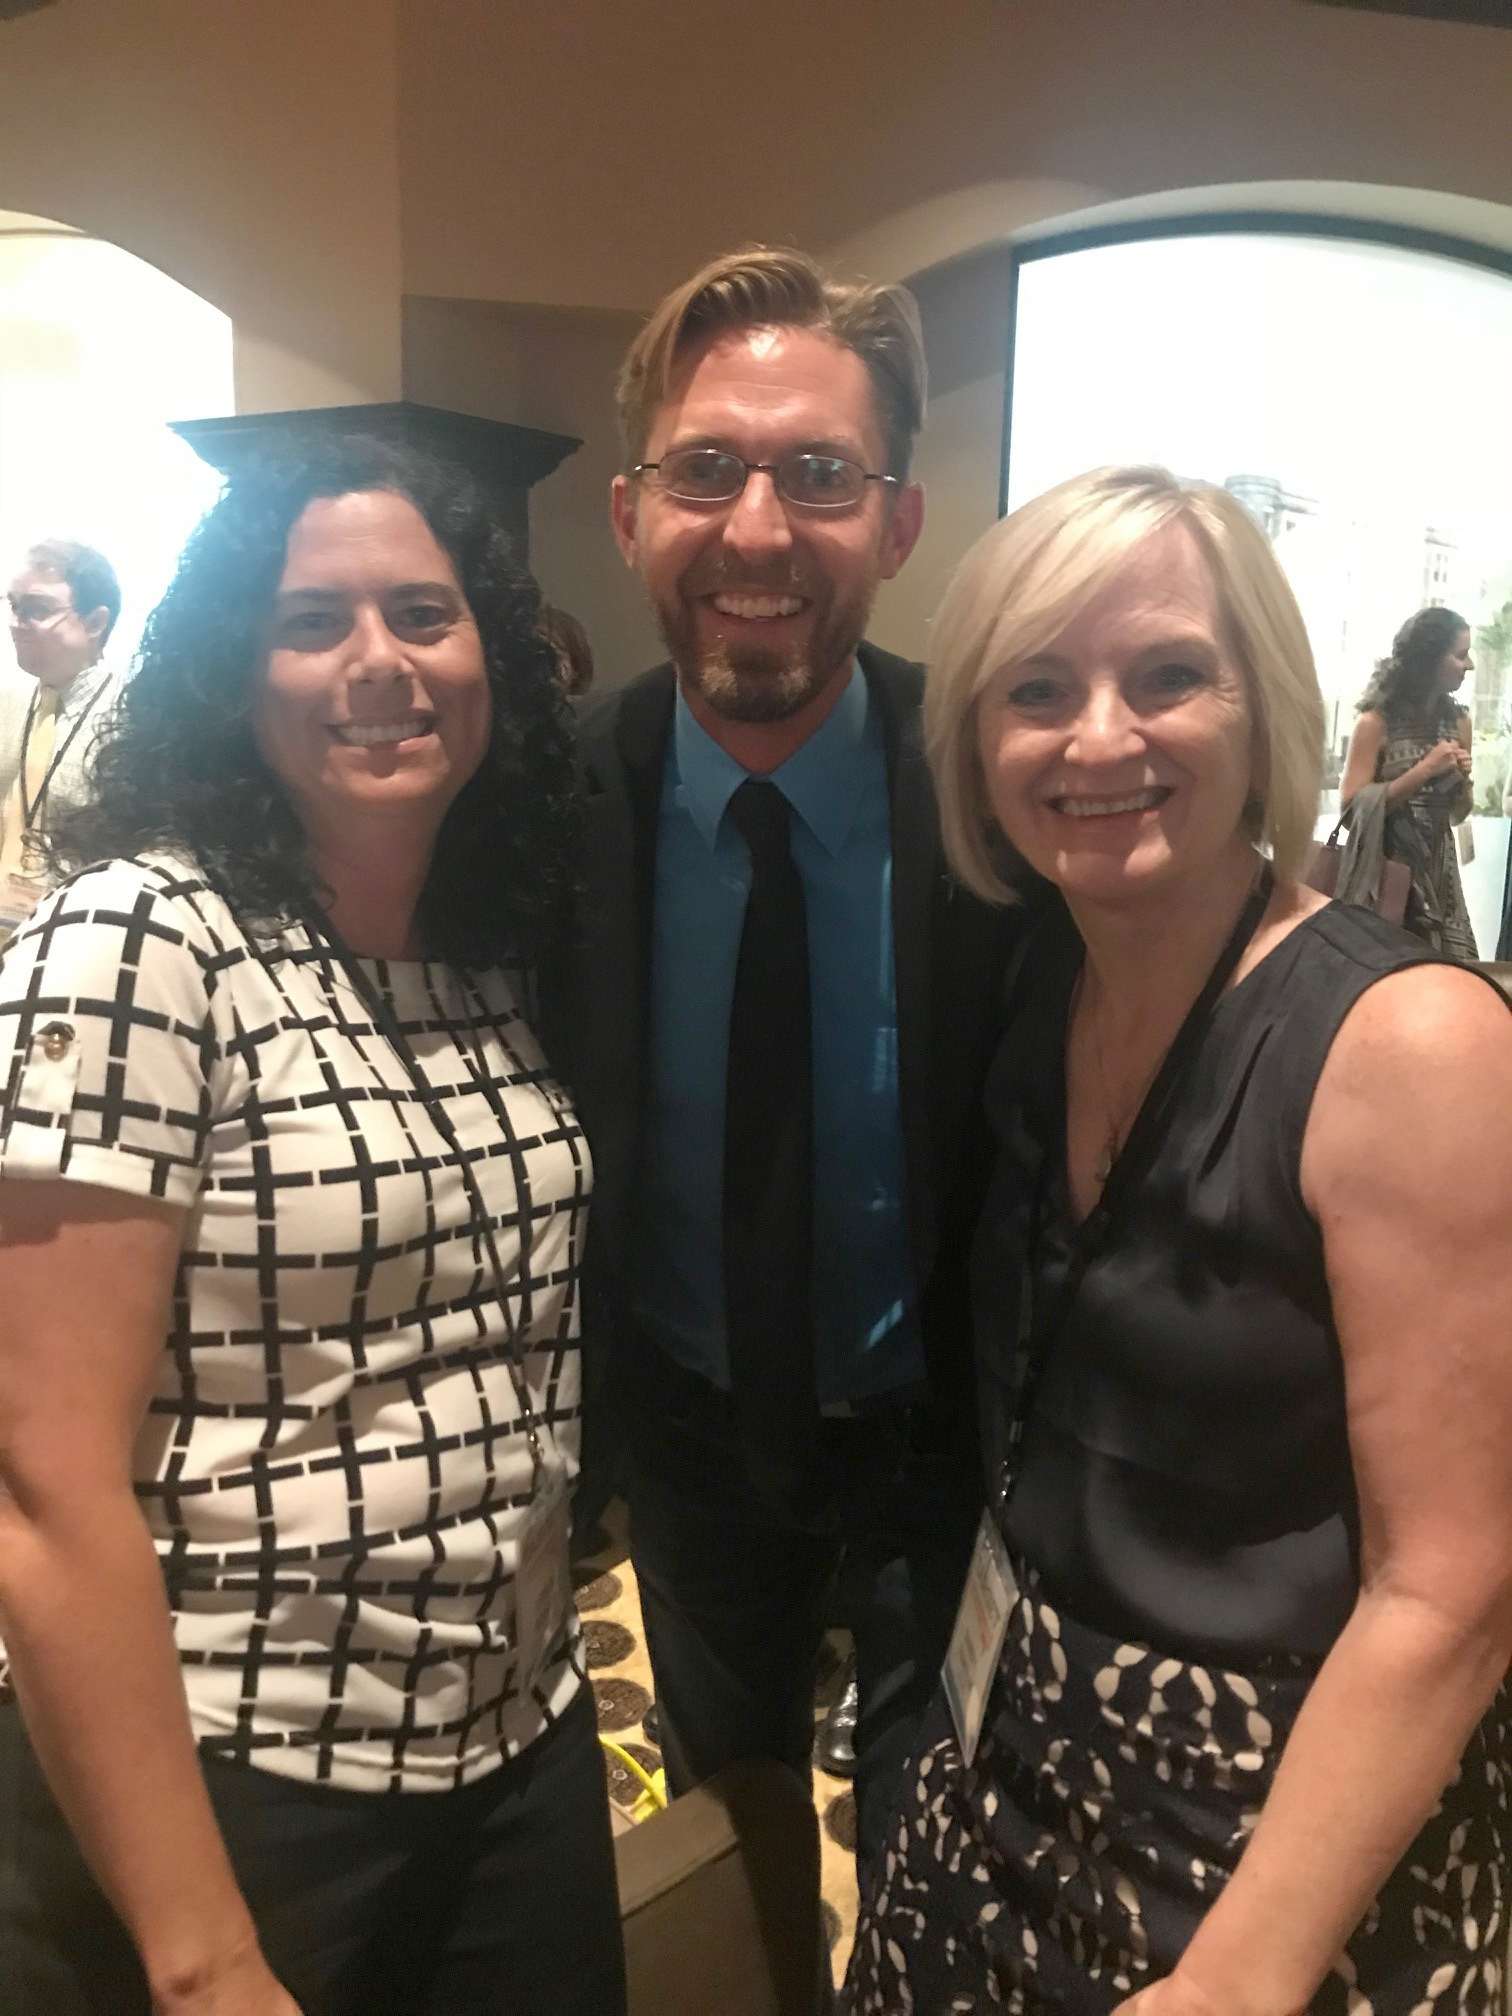 The conference is a great opportunity to network with colleagues from other schools. Leslie Berger and Kevin Miller caught up with Sandy Pantlik from OSU OKC.